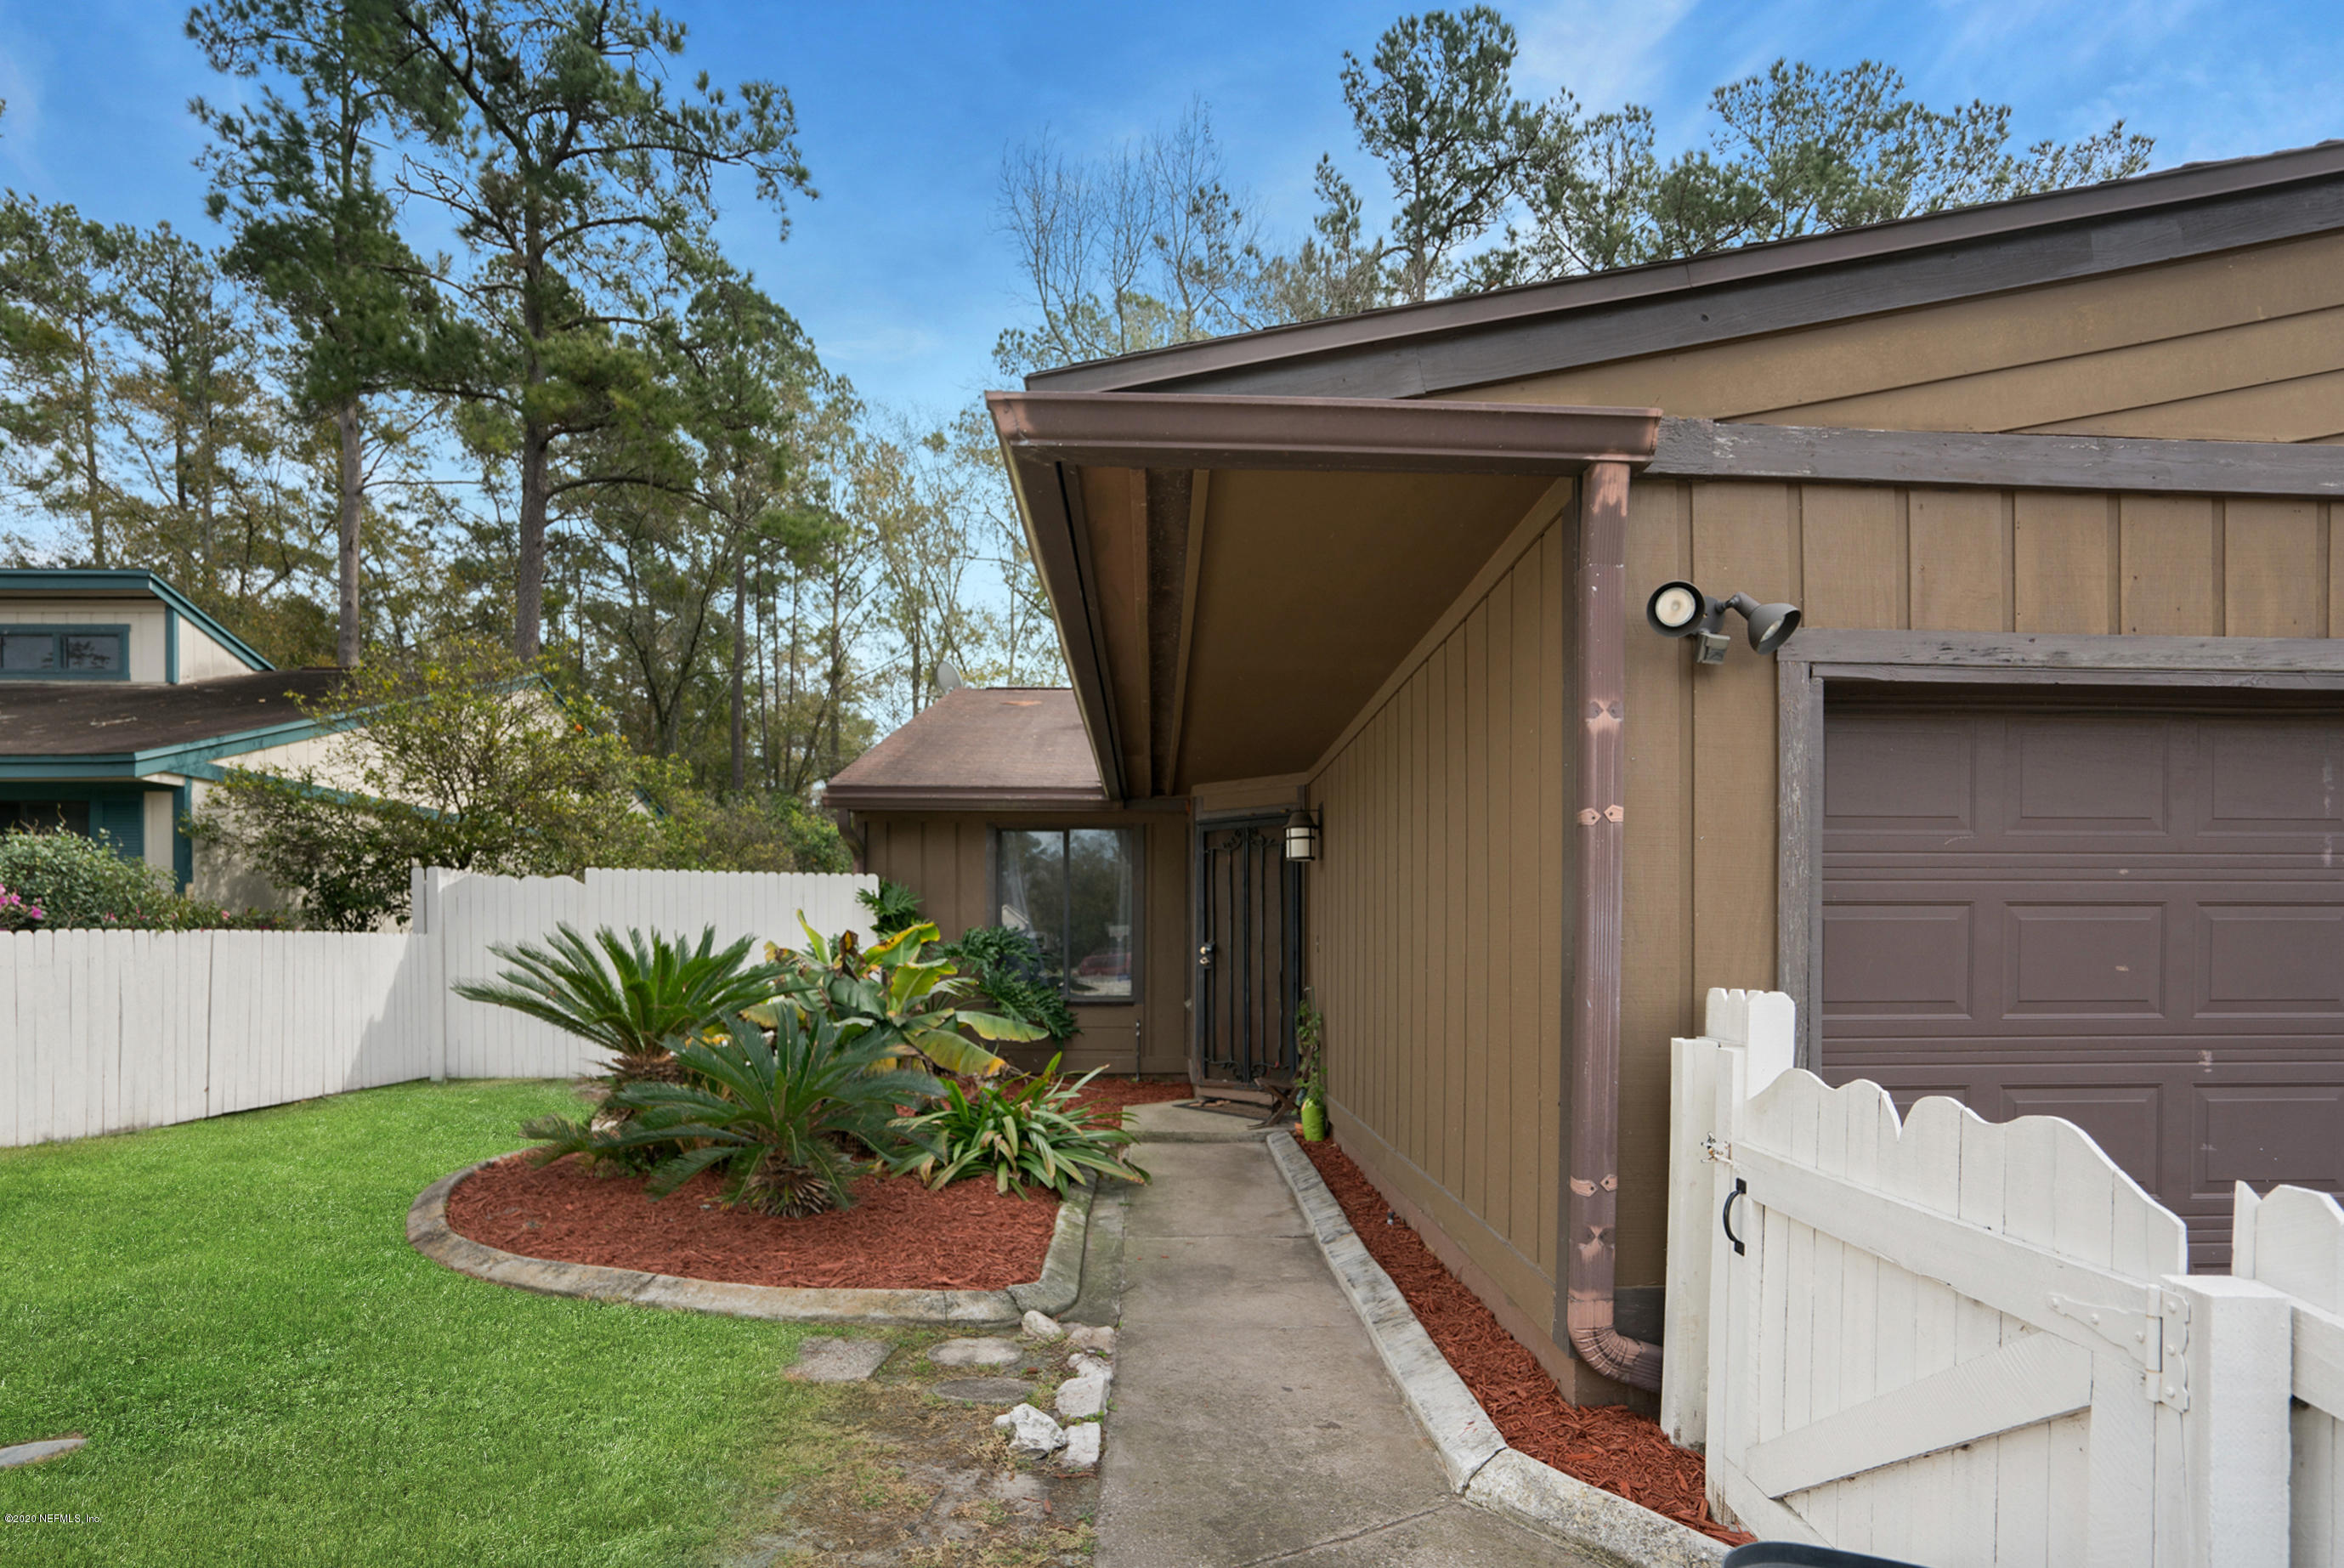 1333 ELLIS TRACE, JACKSONVILLE, FLORIDA 32205, 2 Bedrooms Bedrooms, ,1 BathroomBathrooms,Investment / MultiFamily,For sale,ELLIS TRACE,1080096